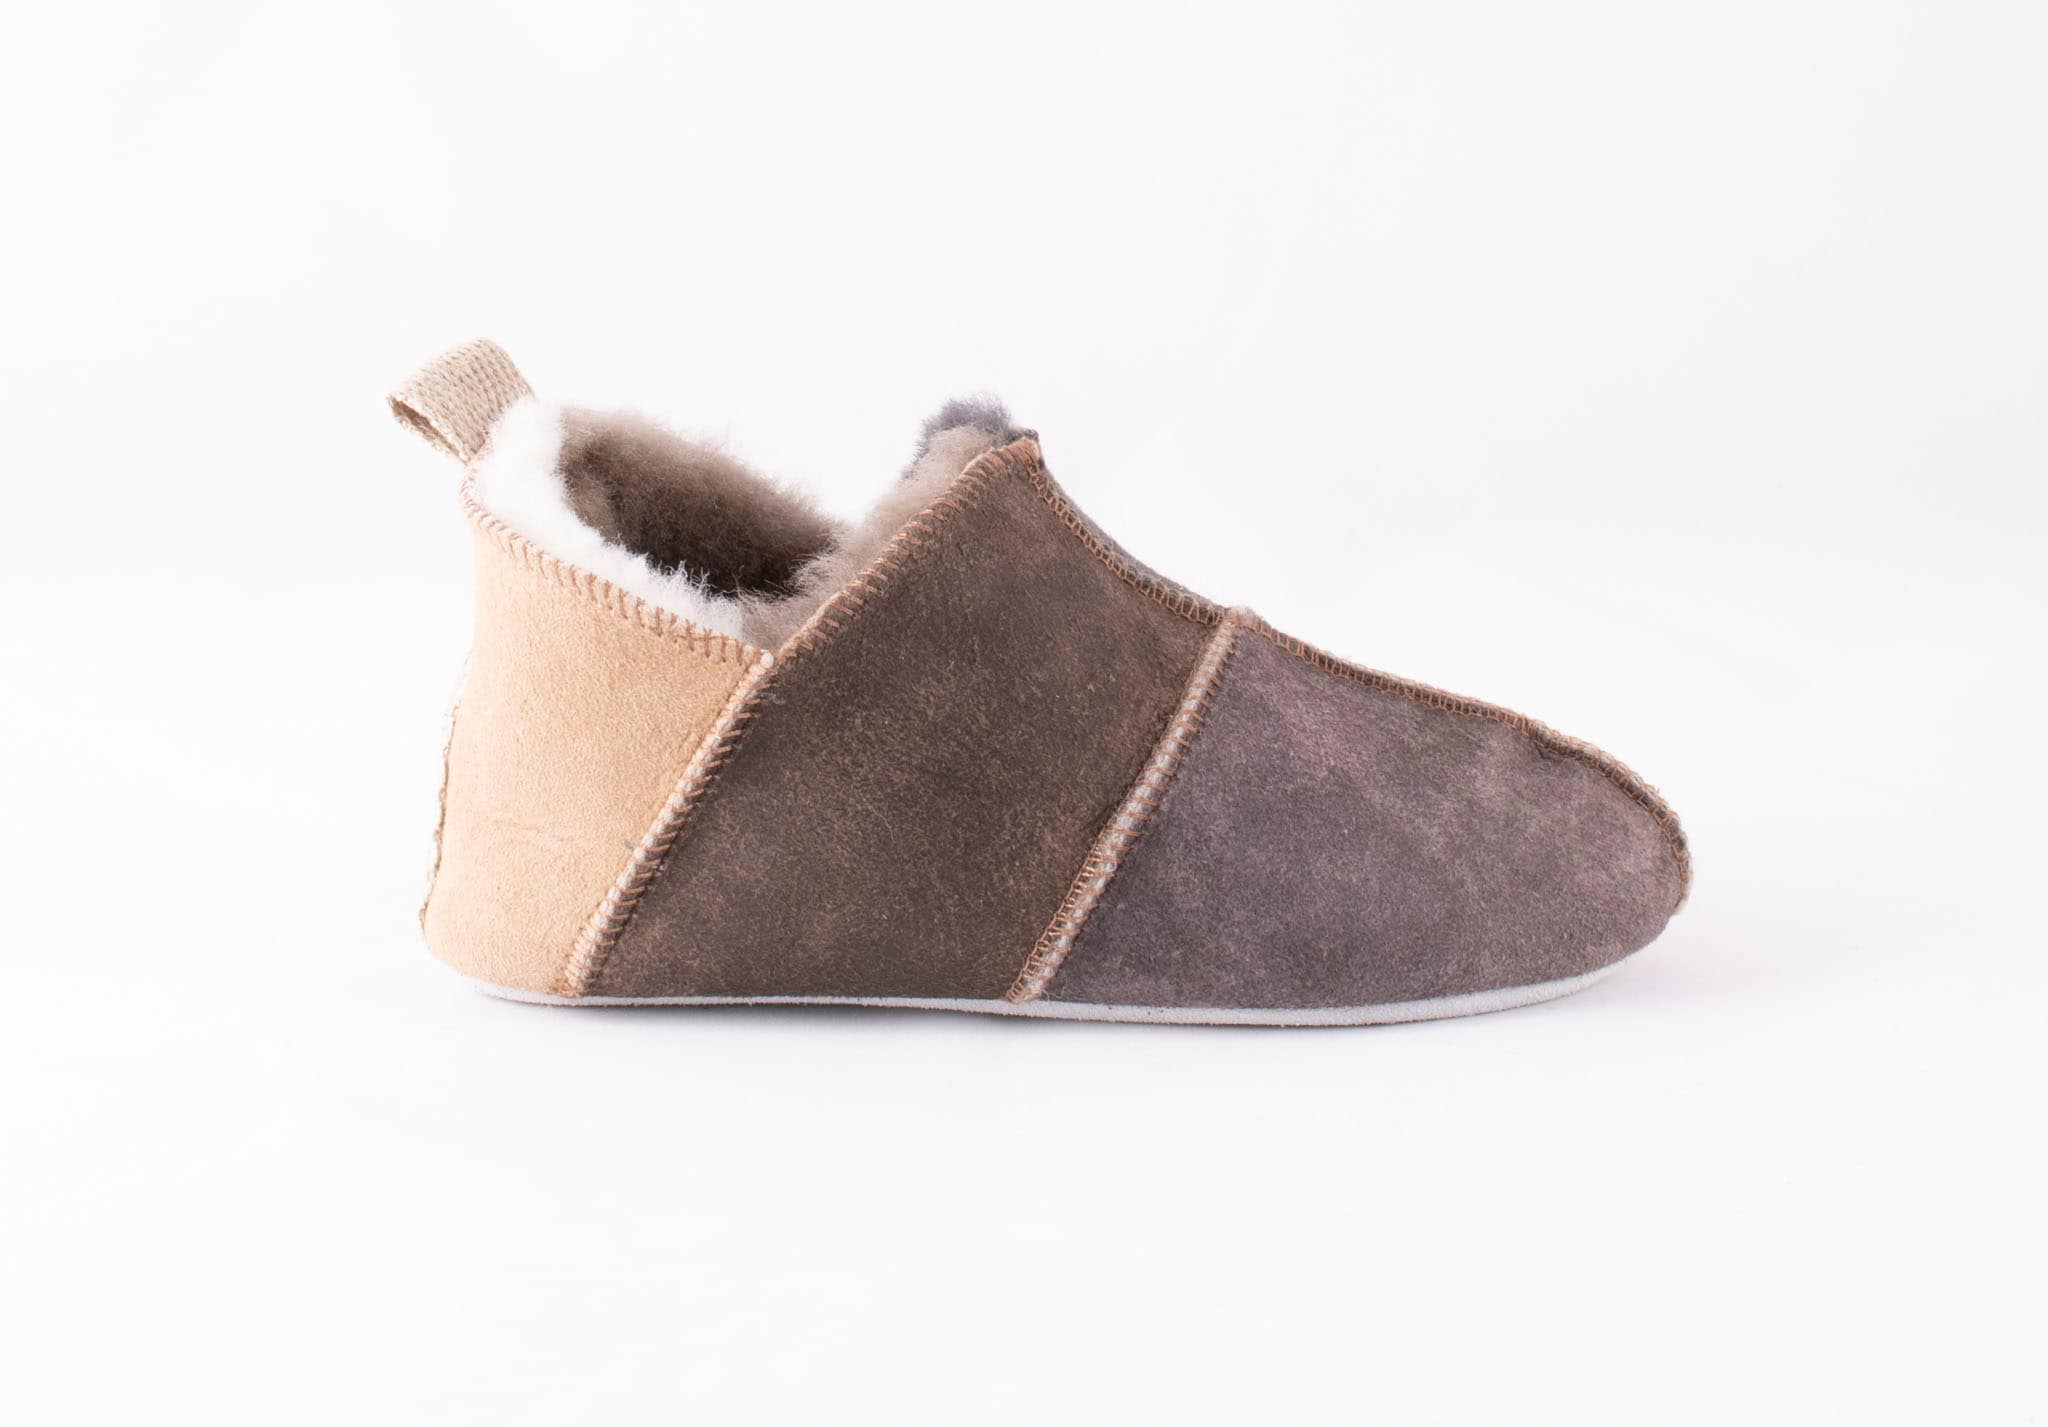 Nol slippers, size 30-35